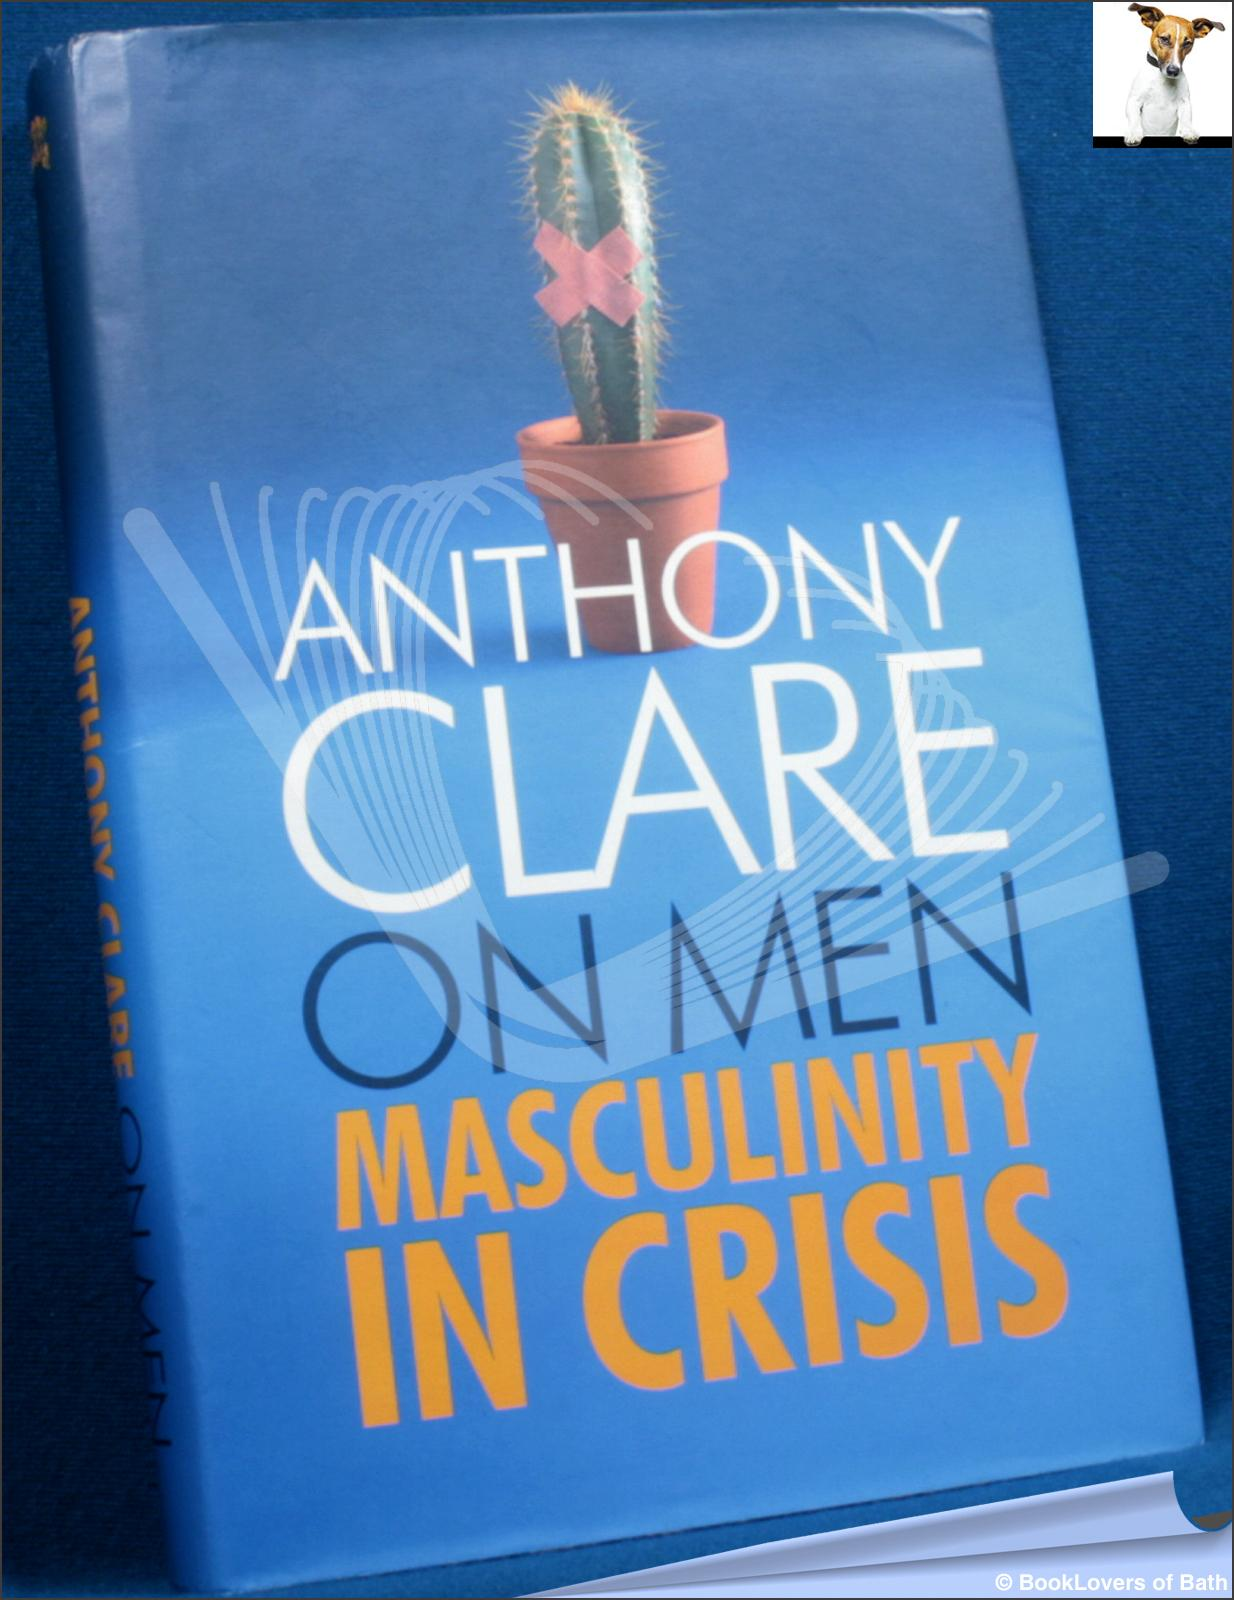 On Men: Masculinity in Crisis - Anthony Clare